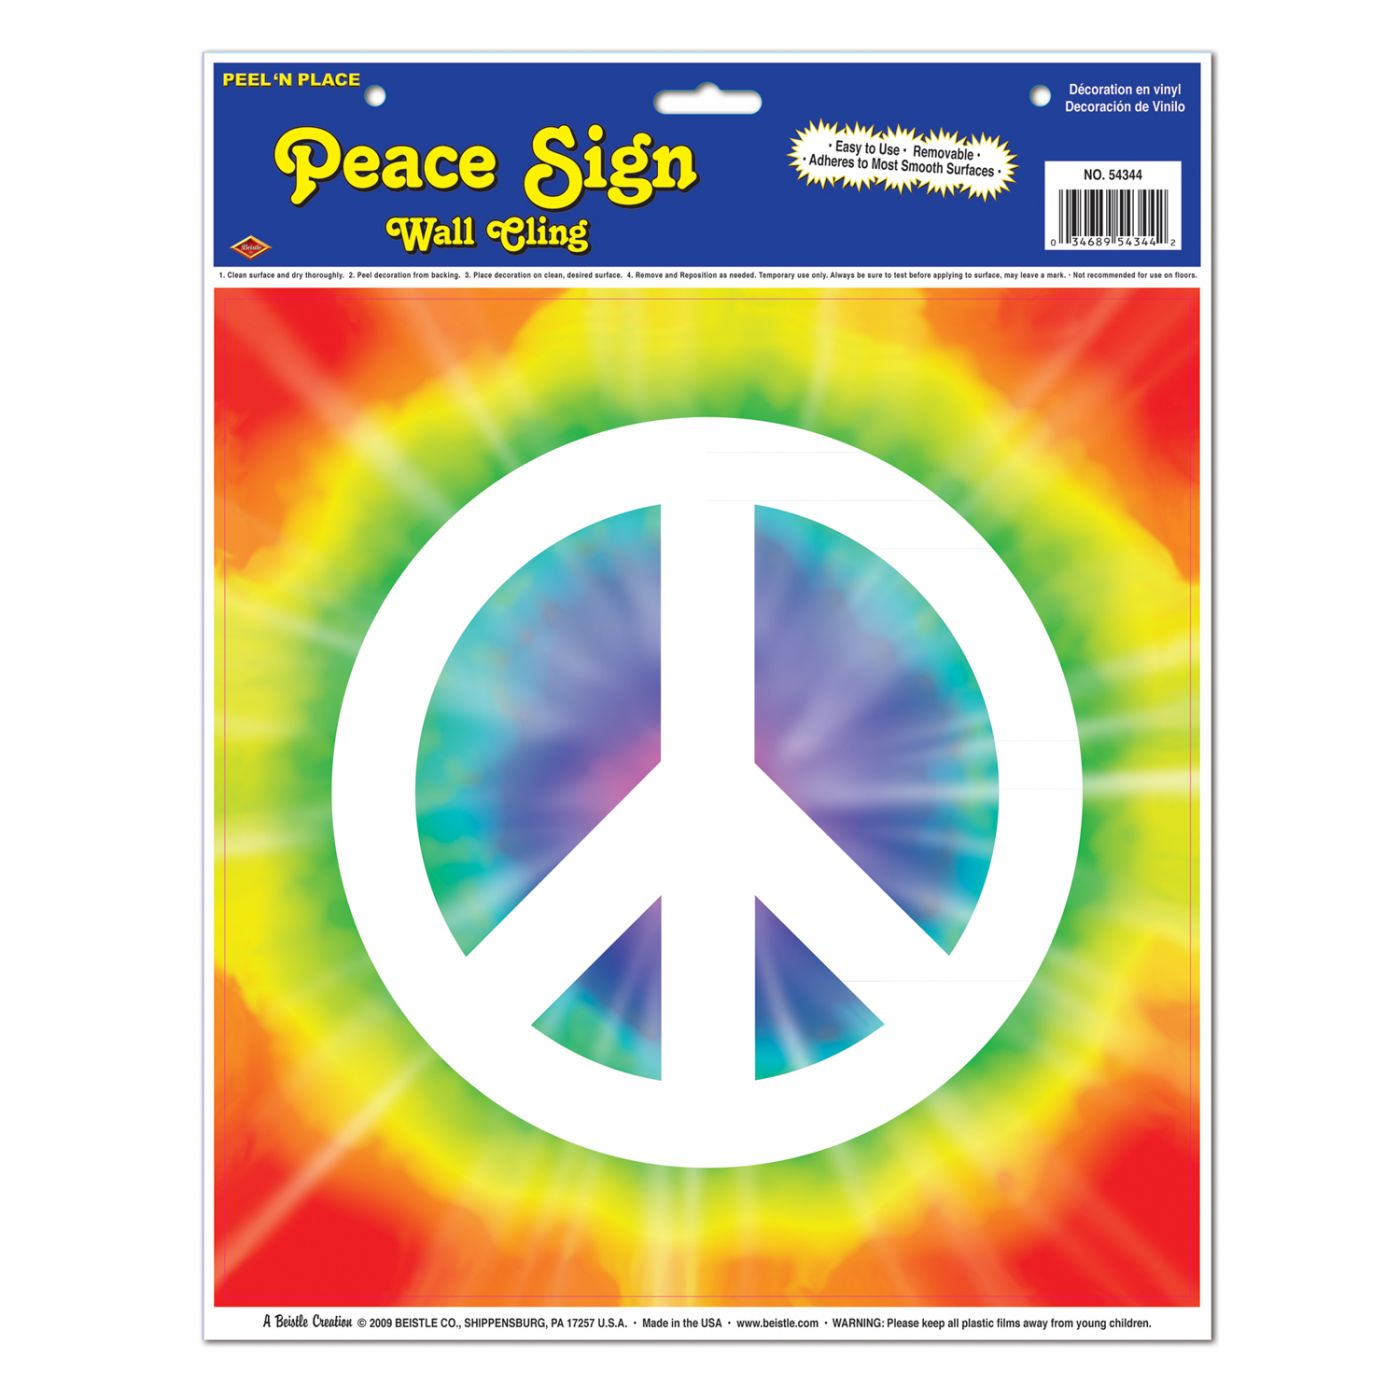 Peace Sign Peel 'N Place image